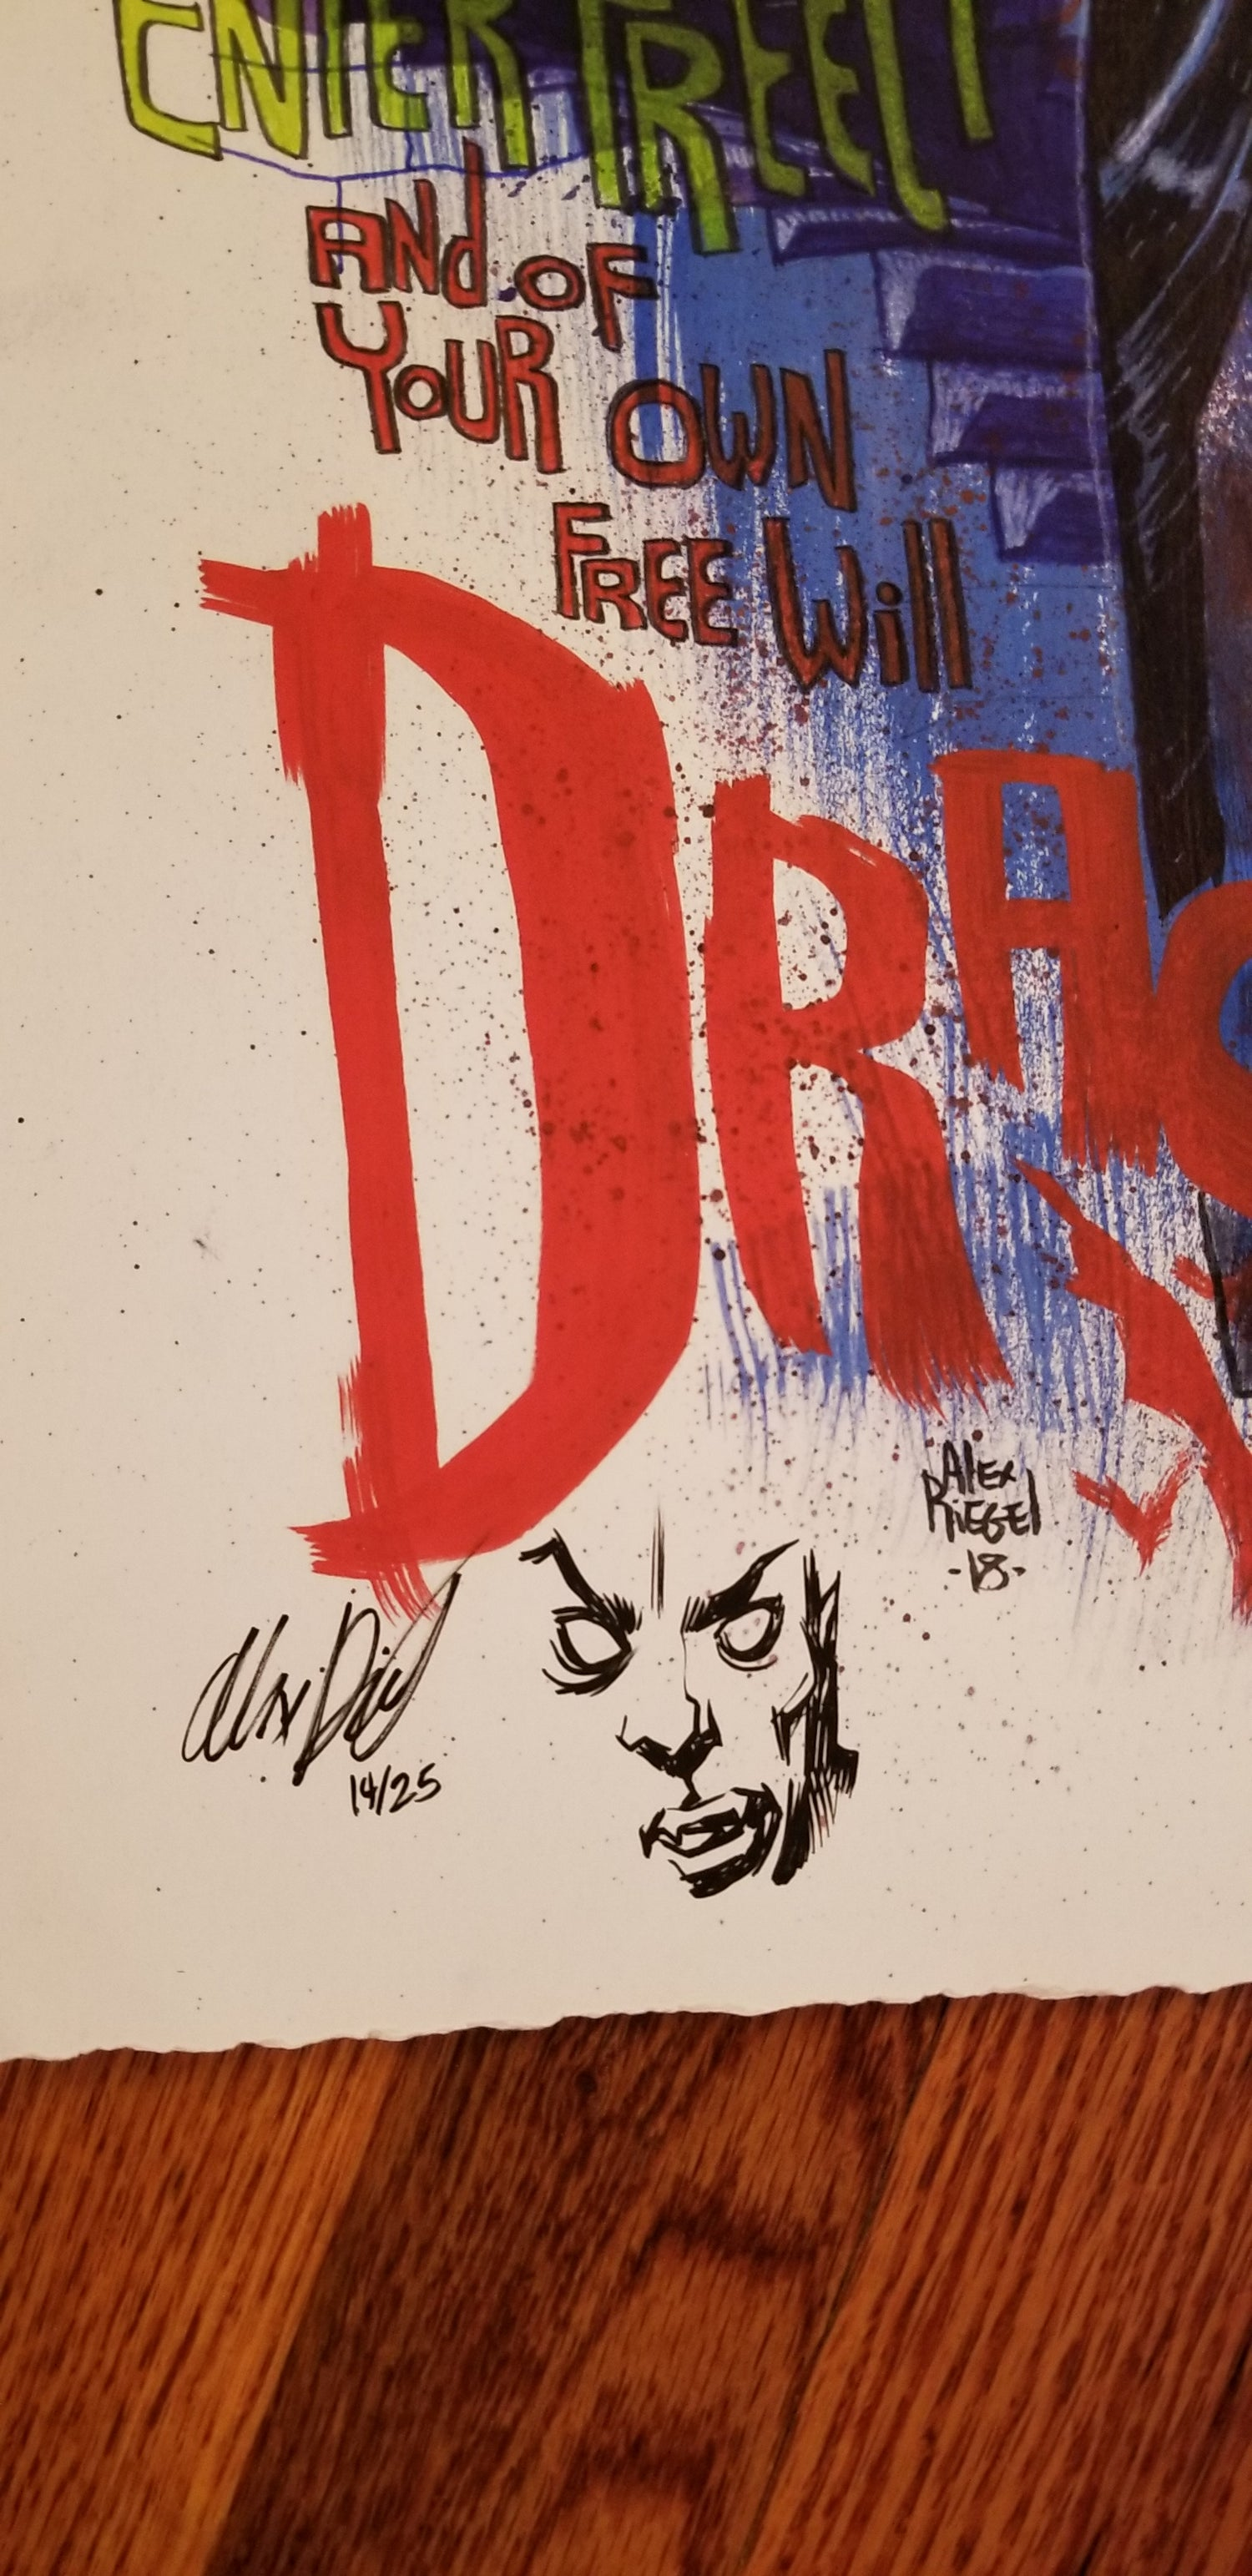 Image of Dracula Limited Edition Giclee Print with remark byby Alex Riegel #14/25